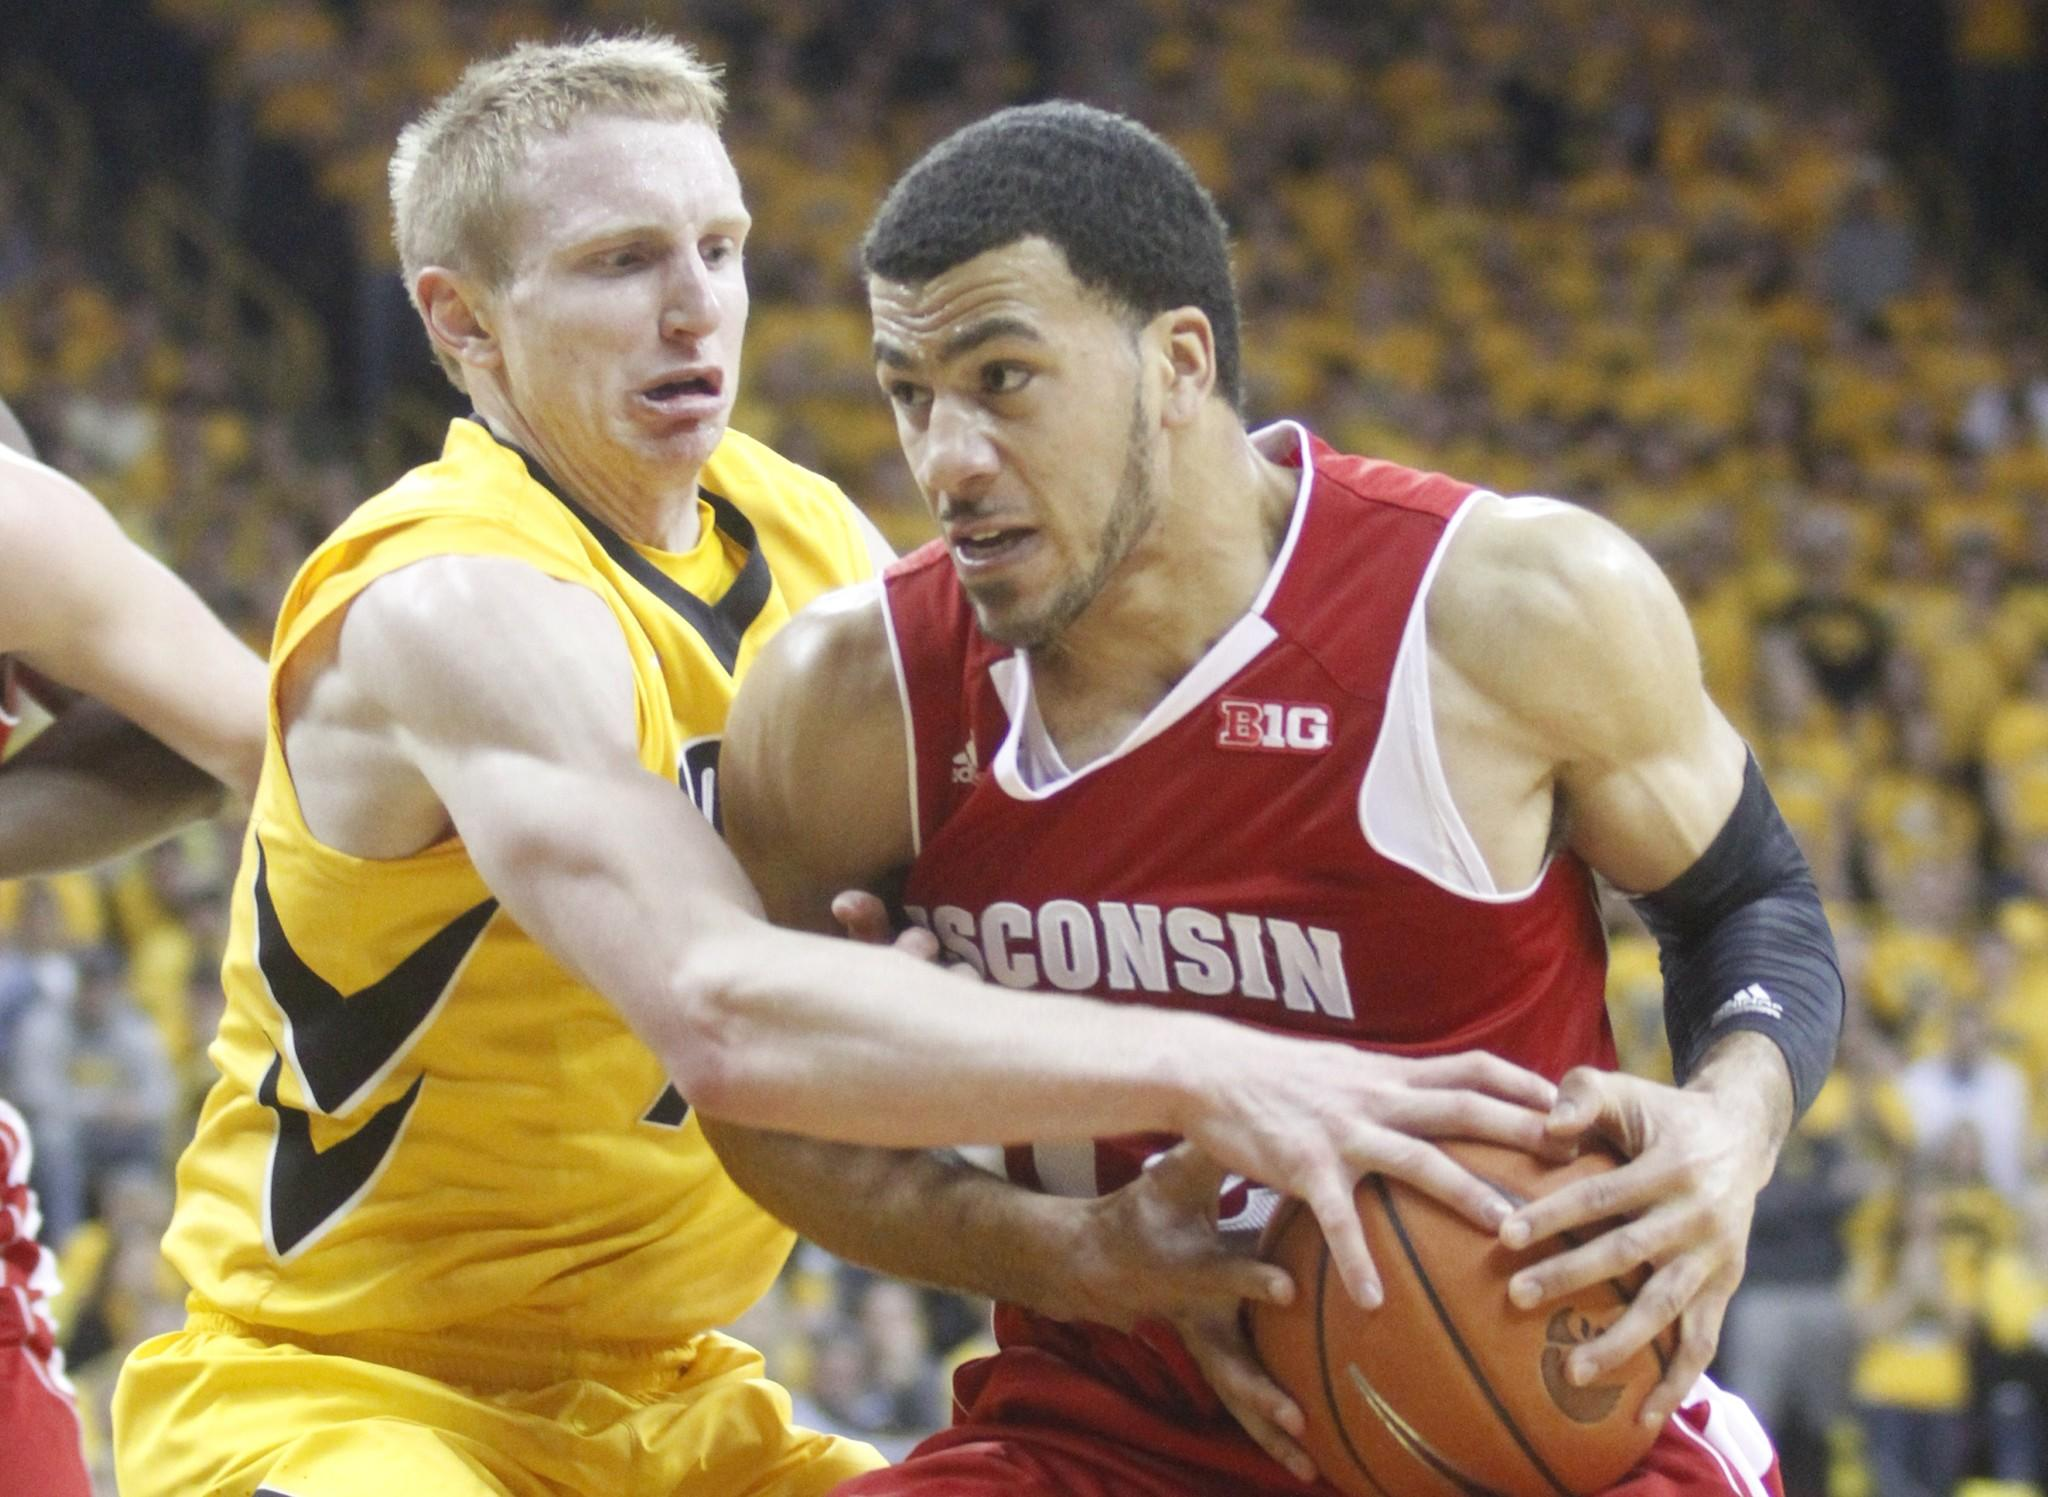 Guard Traevon Jackson of Wisconsin fights to keep tha ball away during the first half from guard Mike Gesll of Iowa.